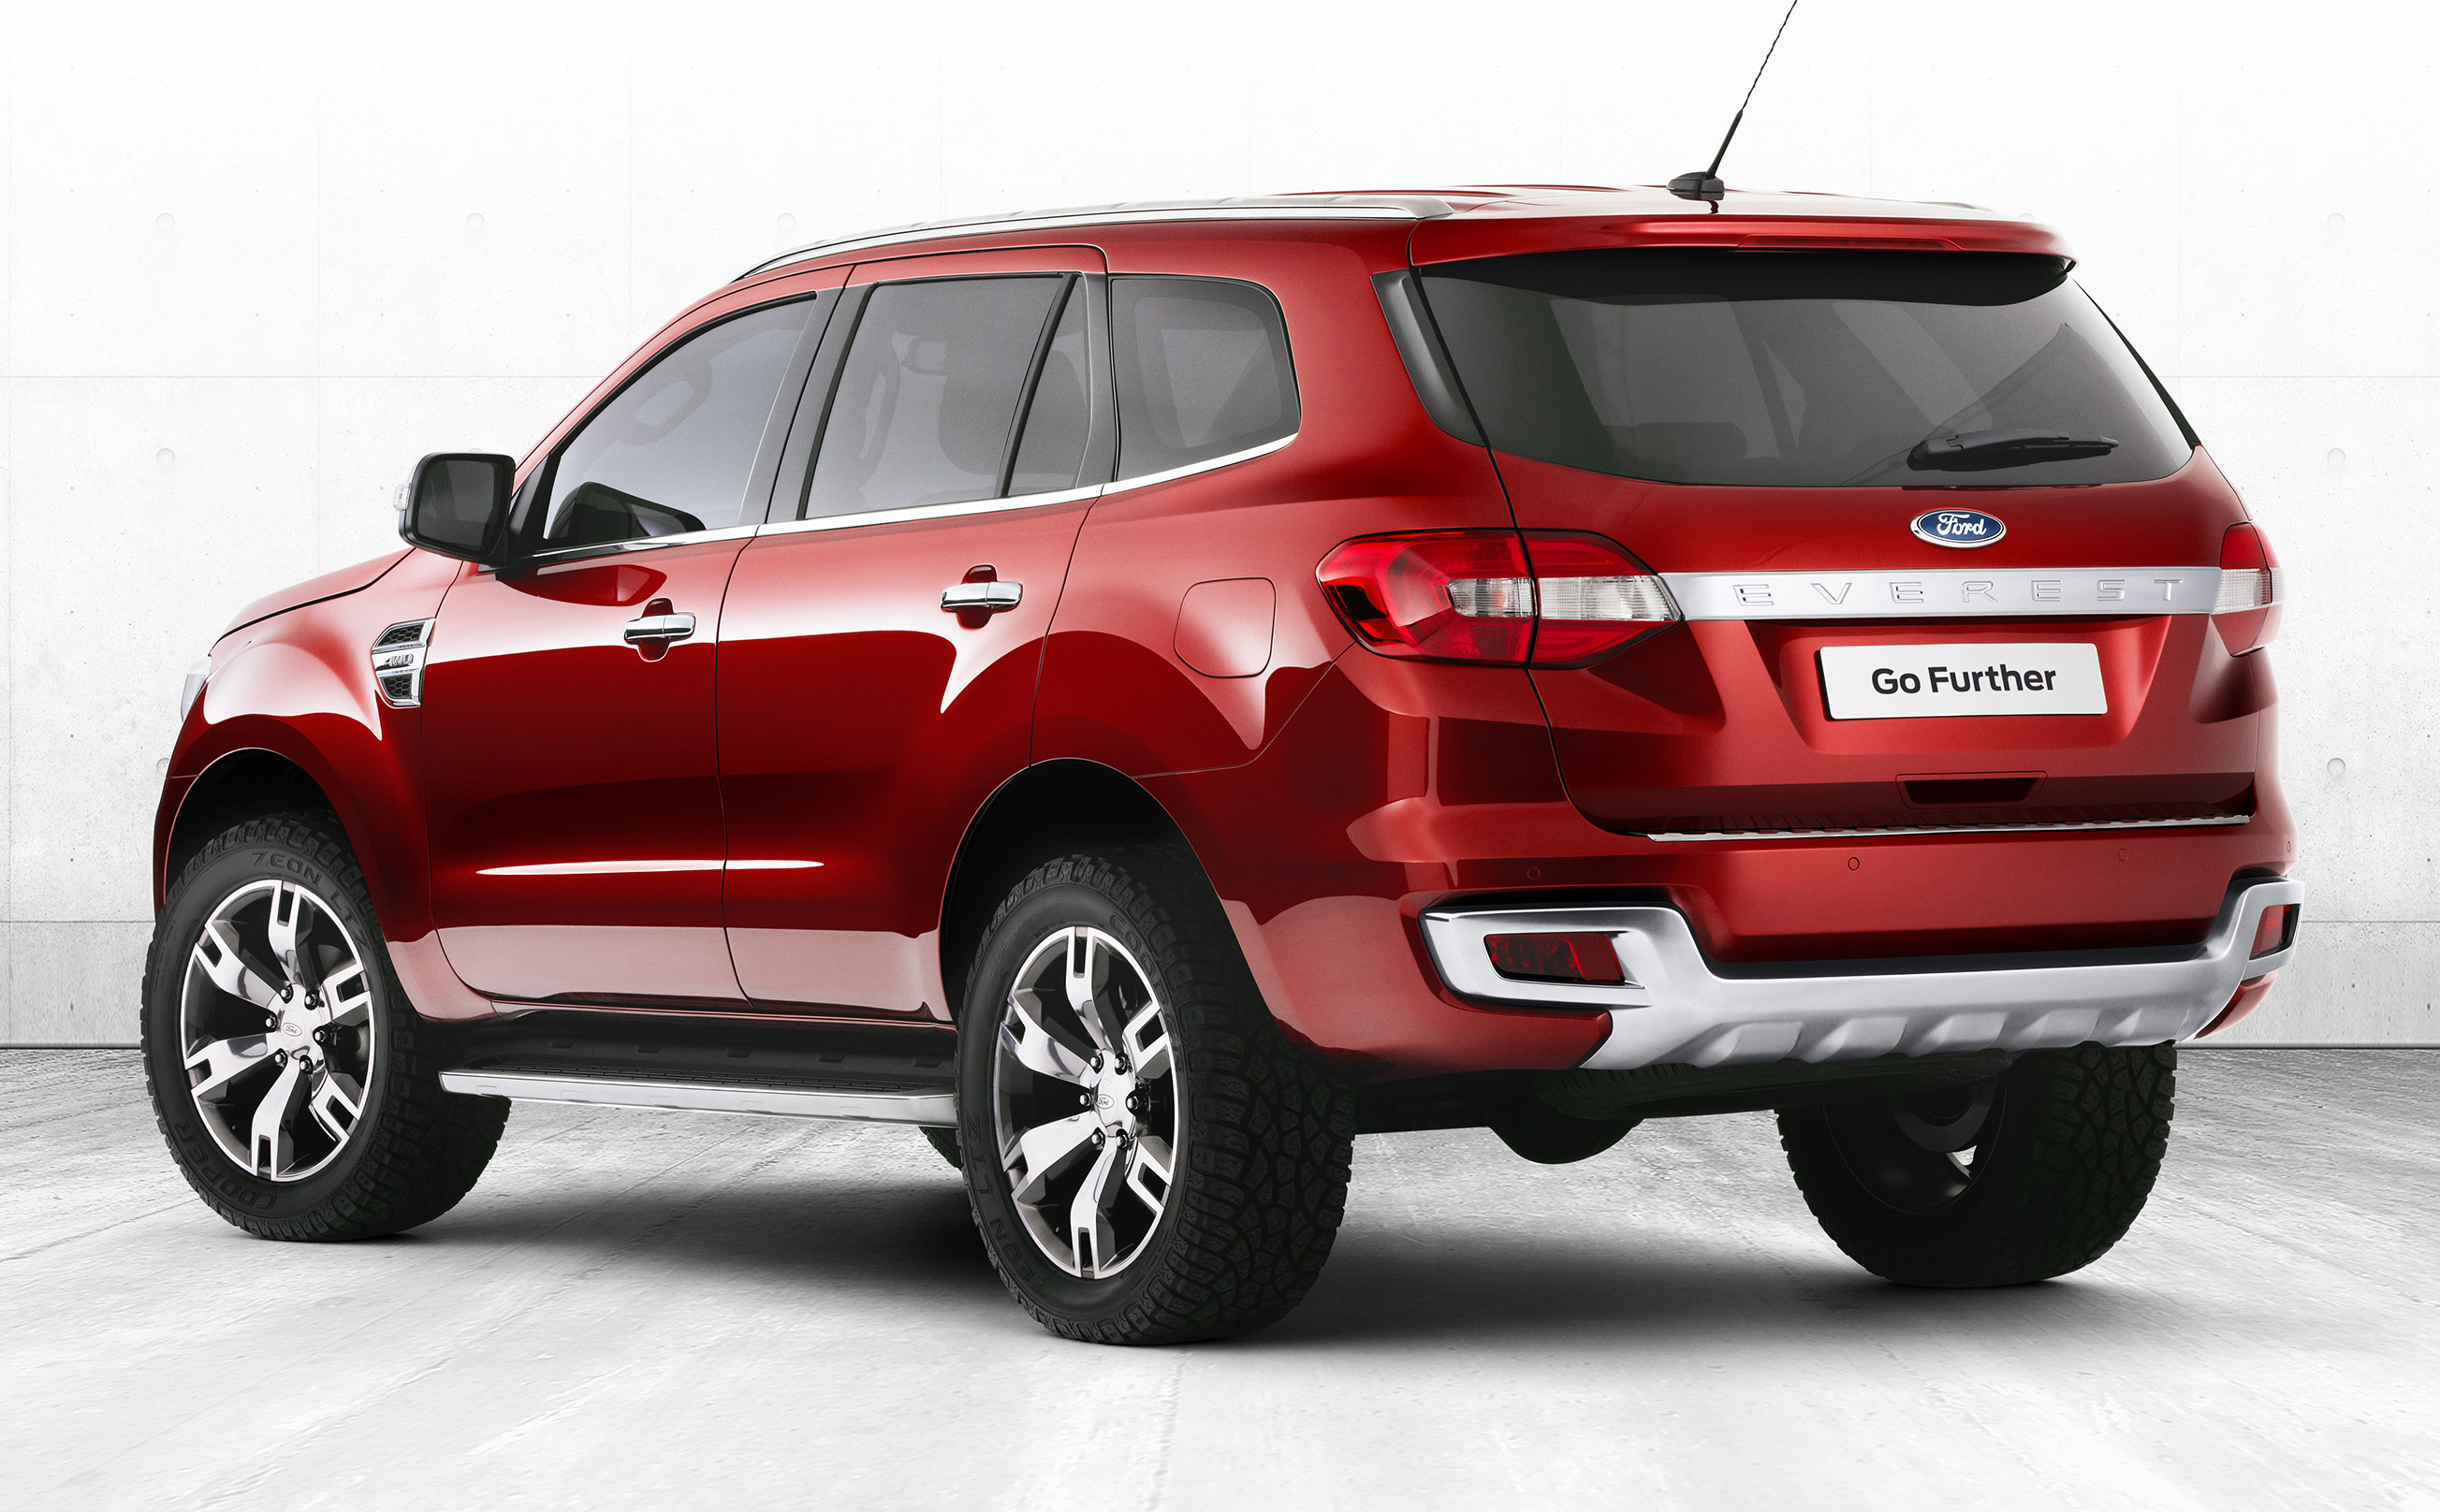 2014_ford_everest_suv_02